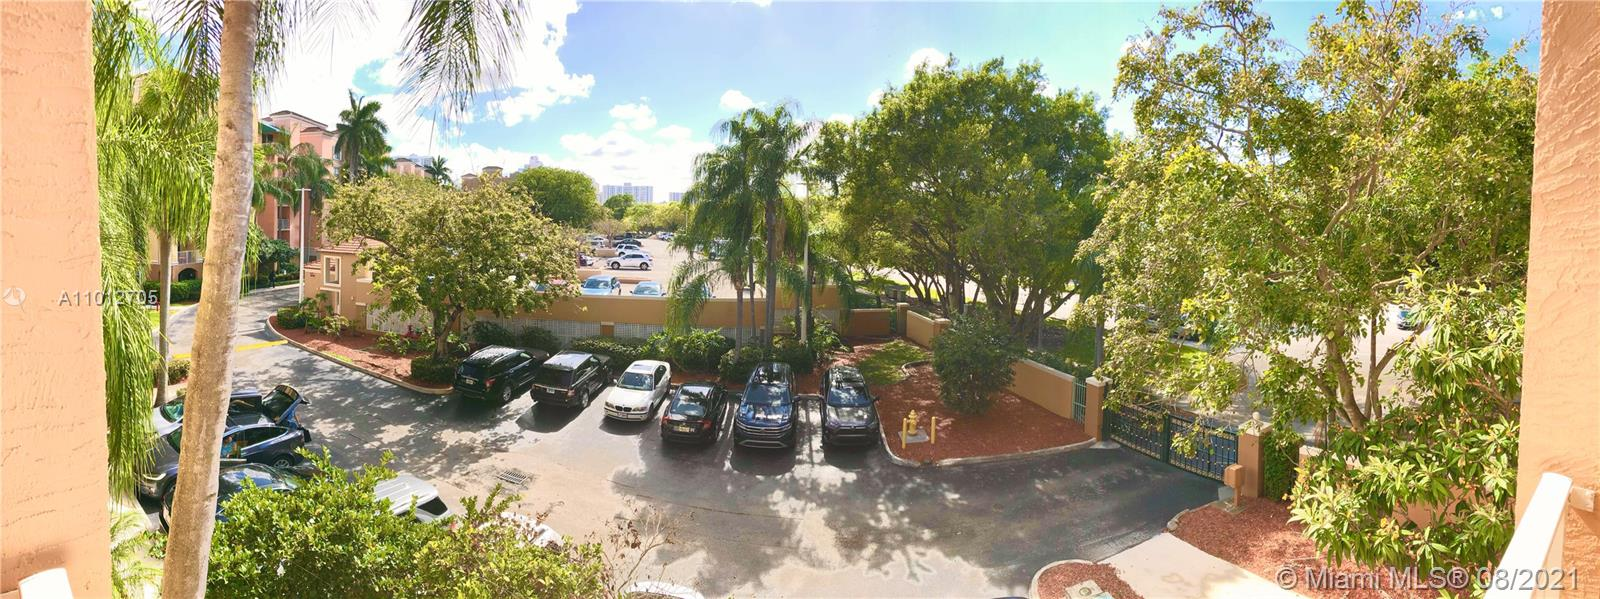 19999 E Country Club Dr #1301 For Sale A11012705, FL